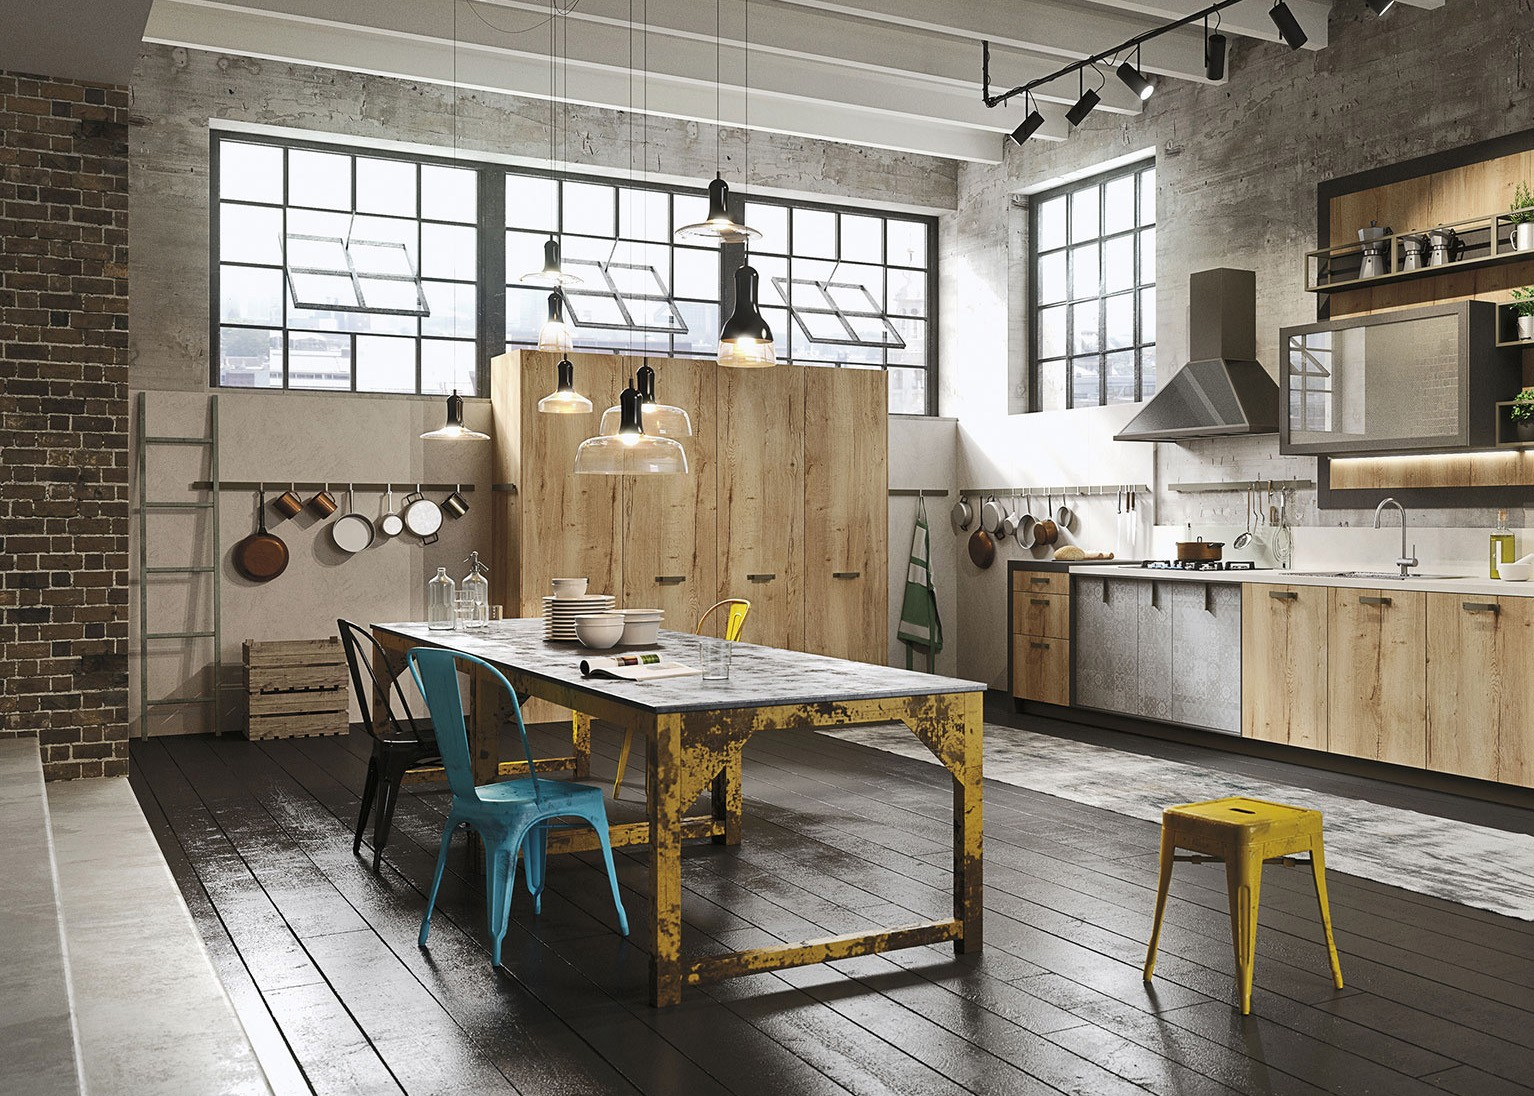 New York Loft Kitchens | Kitchen Magazine